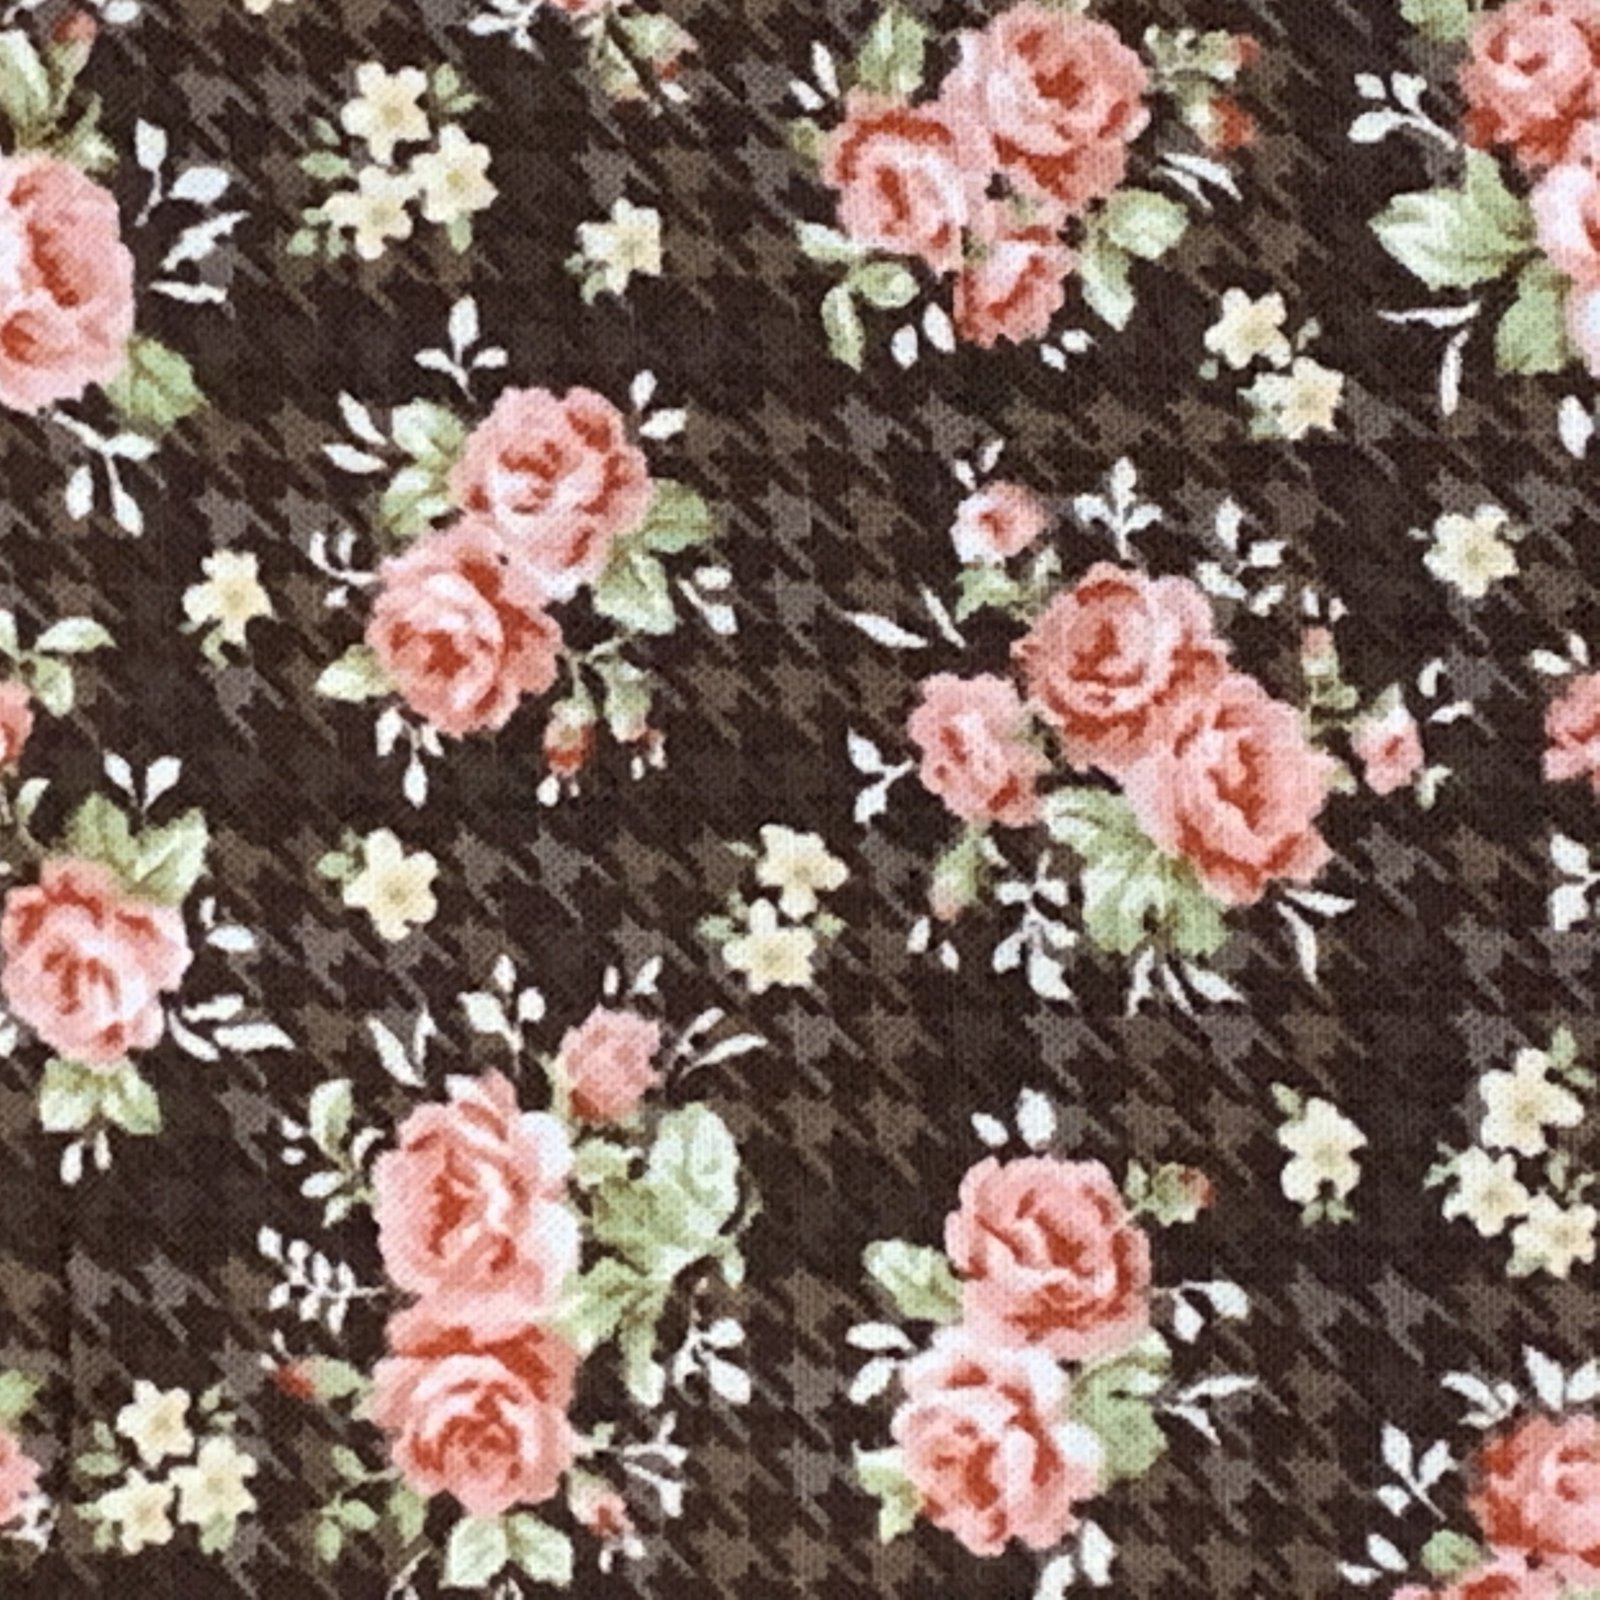 Pink Roses on Brown Houndstooth